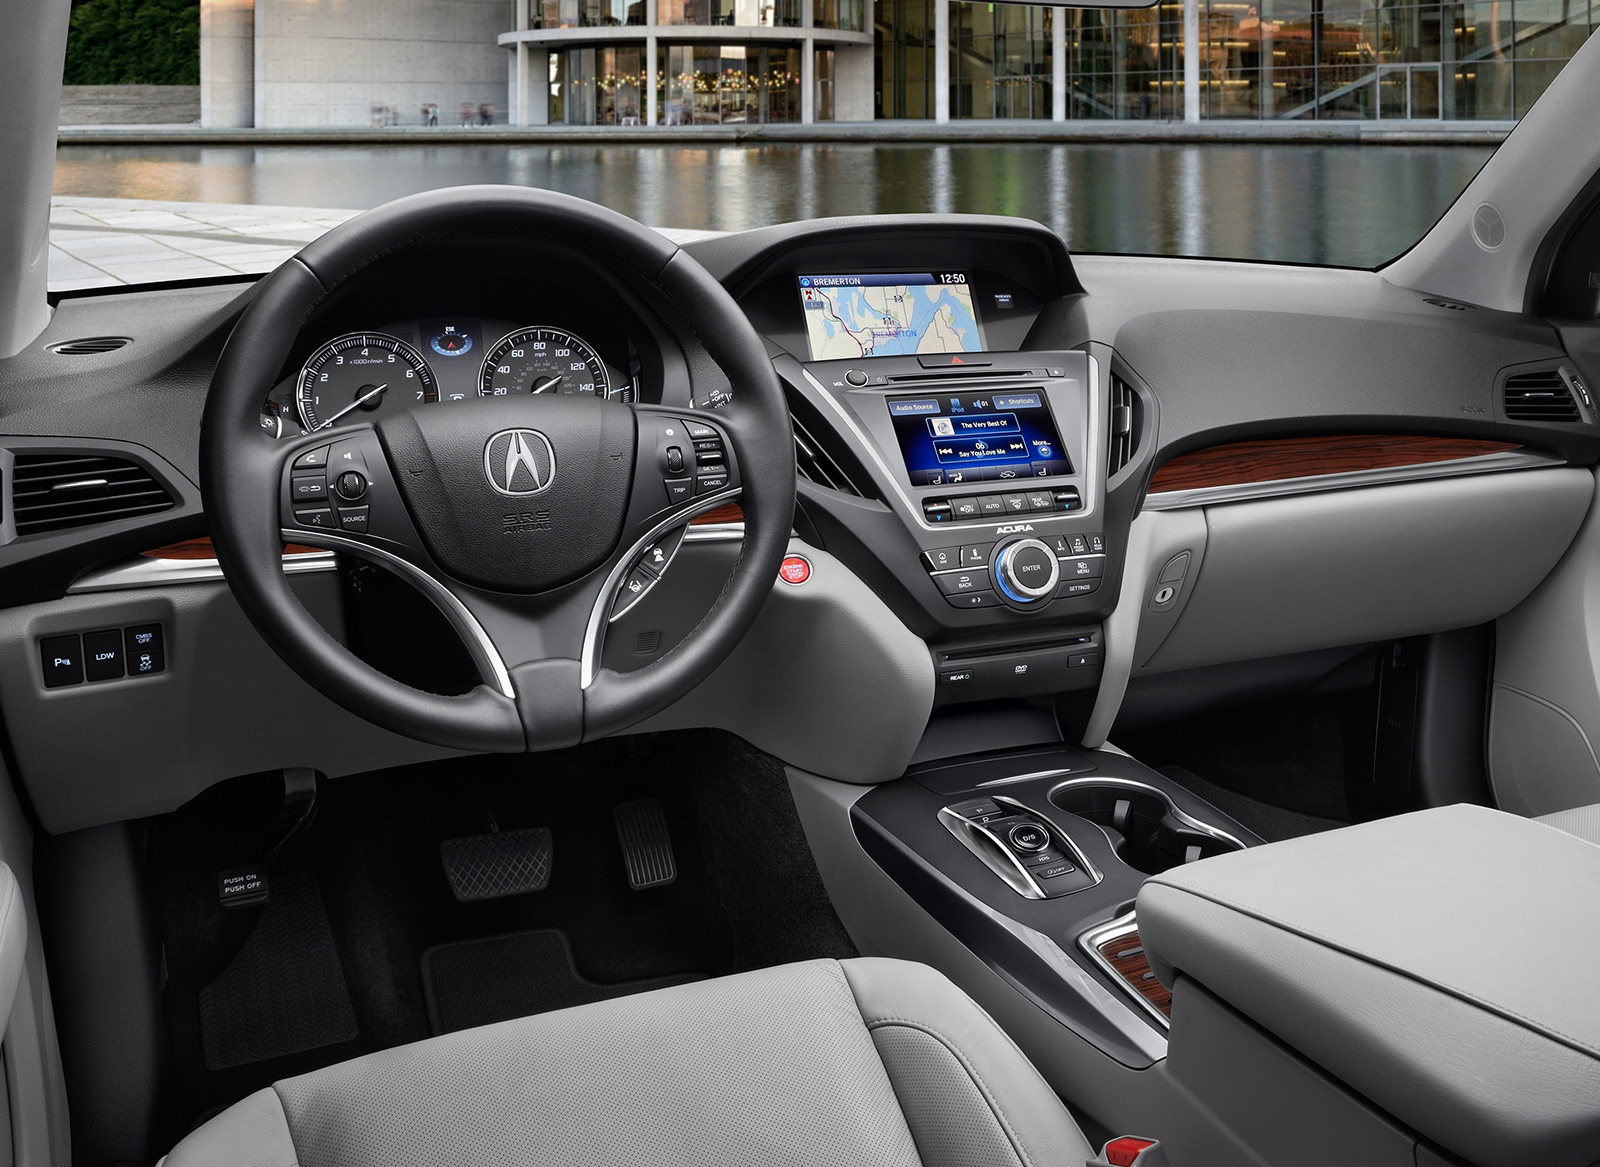 Canada Goose langford parka online store - Acura Falls A Lot On Consumer Reports List - Page 2 - Acura MDX ...